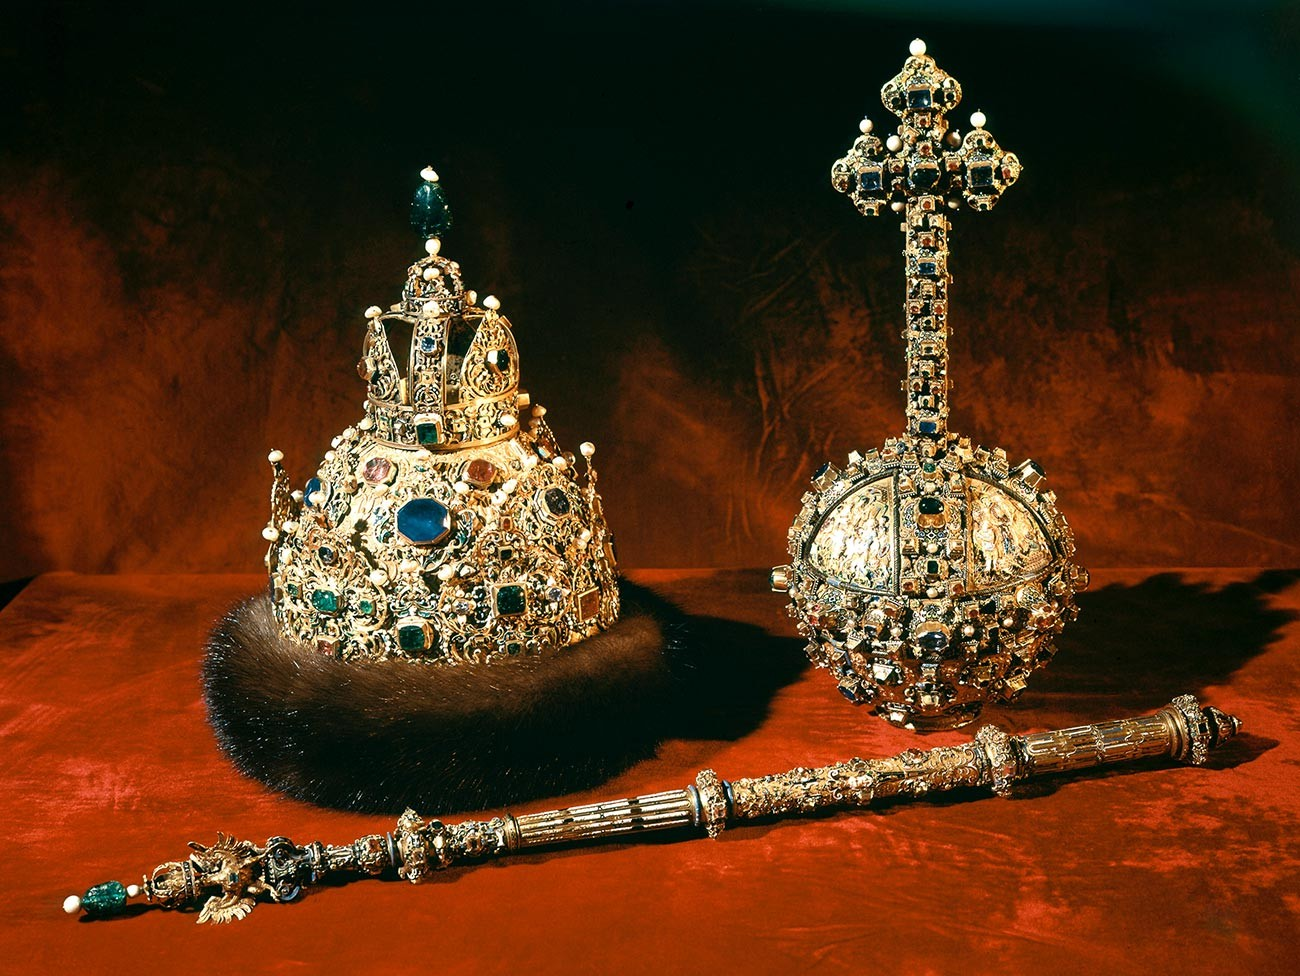 Russian tsarist regalia: the crown, the scepter and the orb